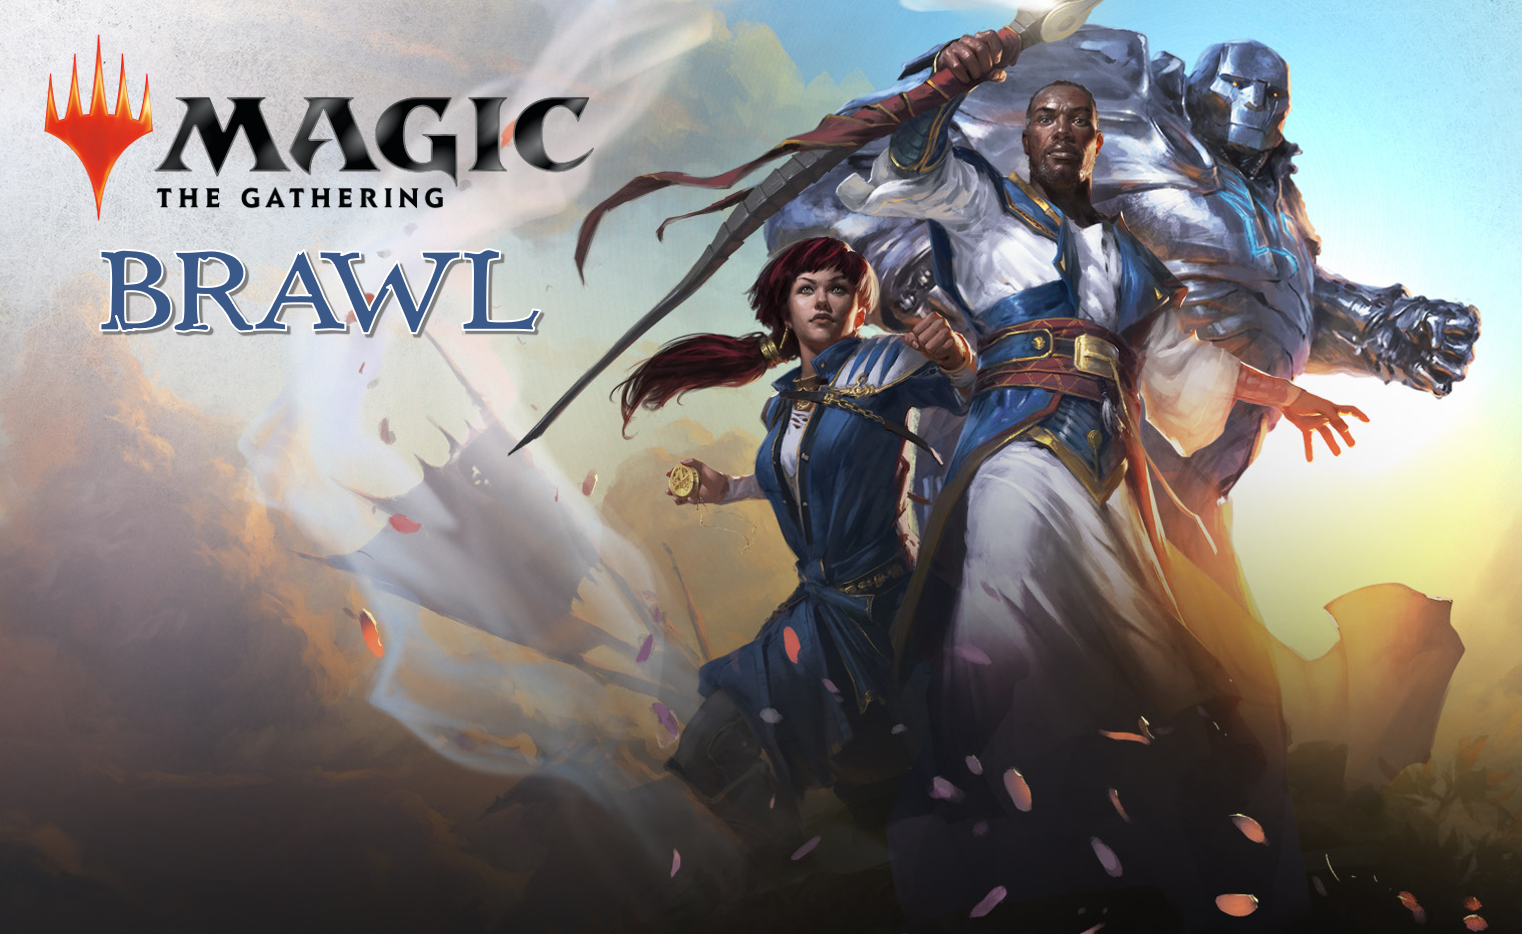 Casual Magic: The Fate of Brawl